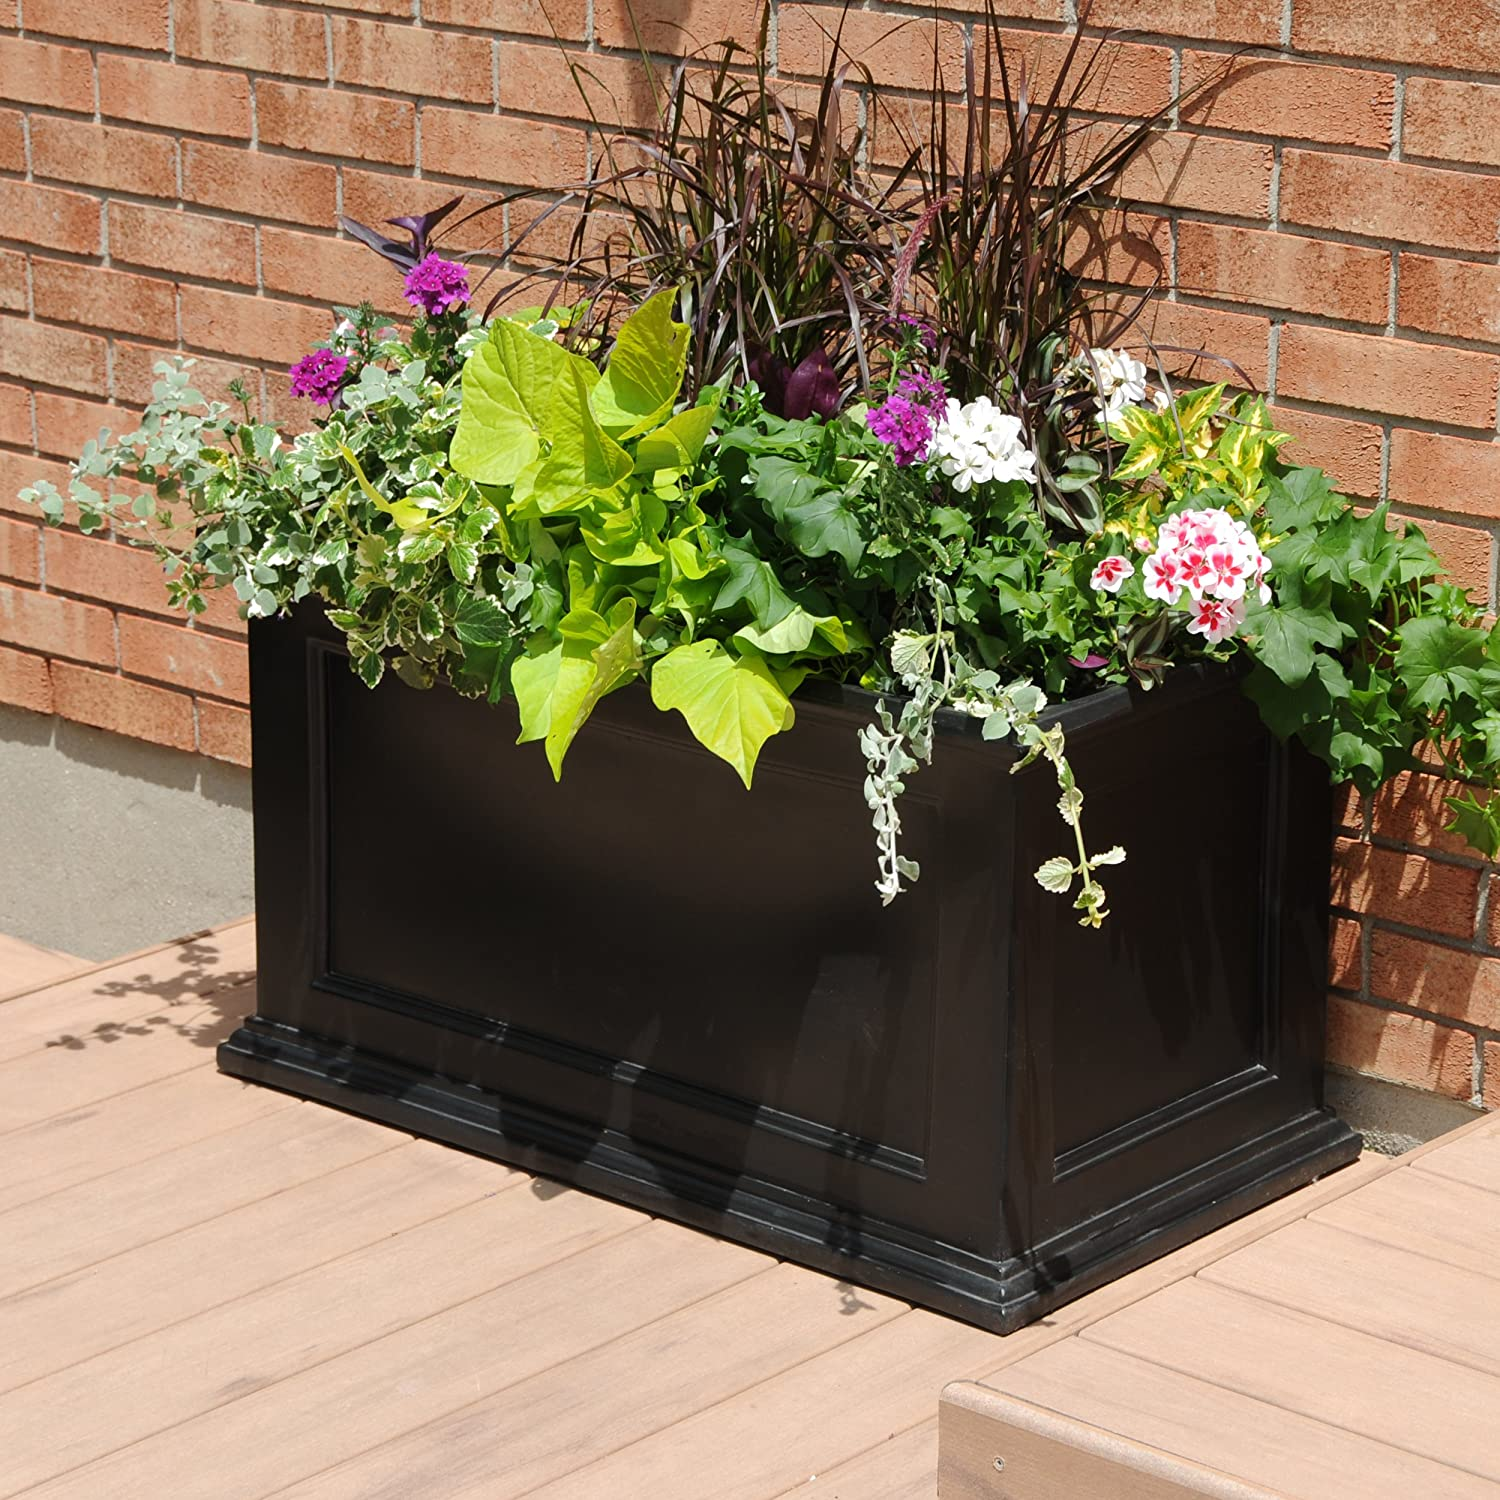 Amazon.com : Mayne Fairfield 5826B Patio Planter, 20 Inch By 36 Inch, Black  : Inside Patio Pots : Garden U0026 Outdoor